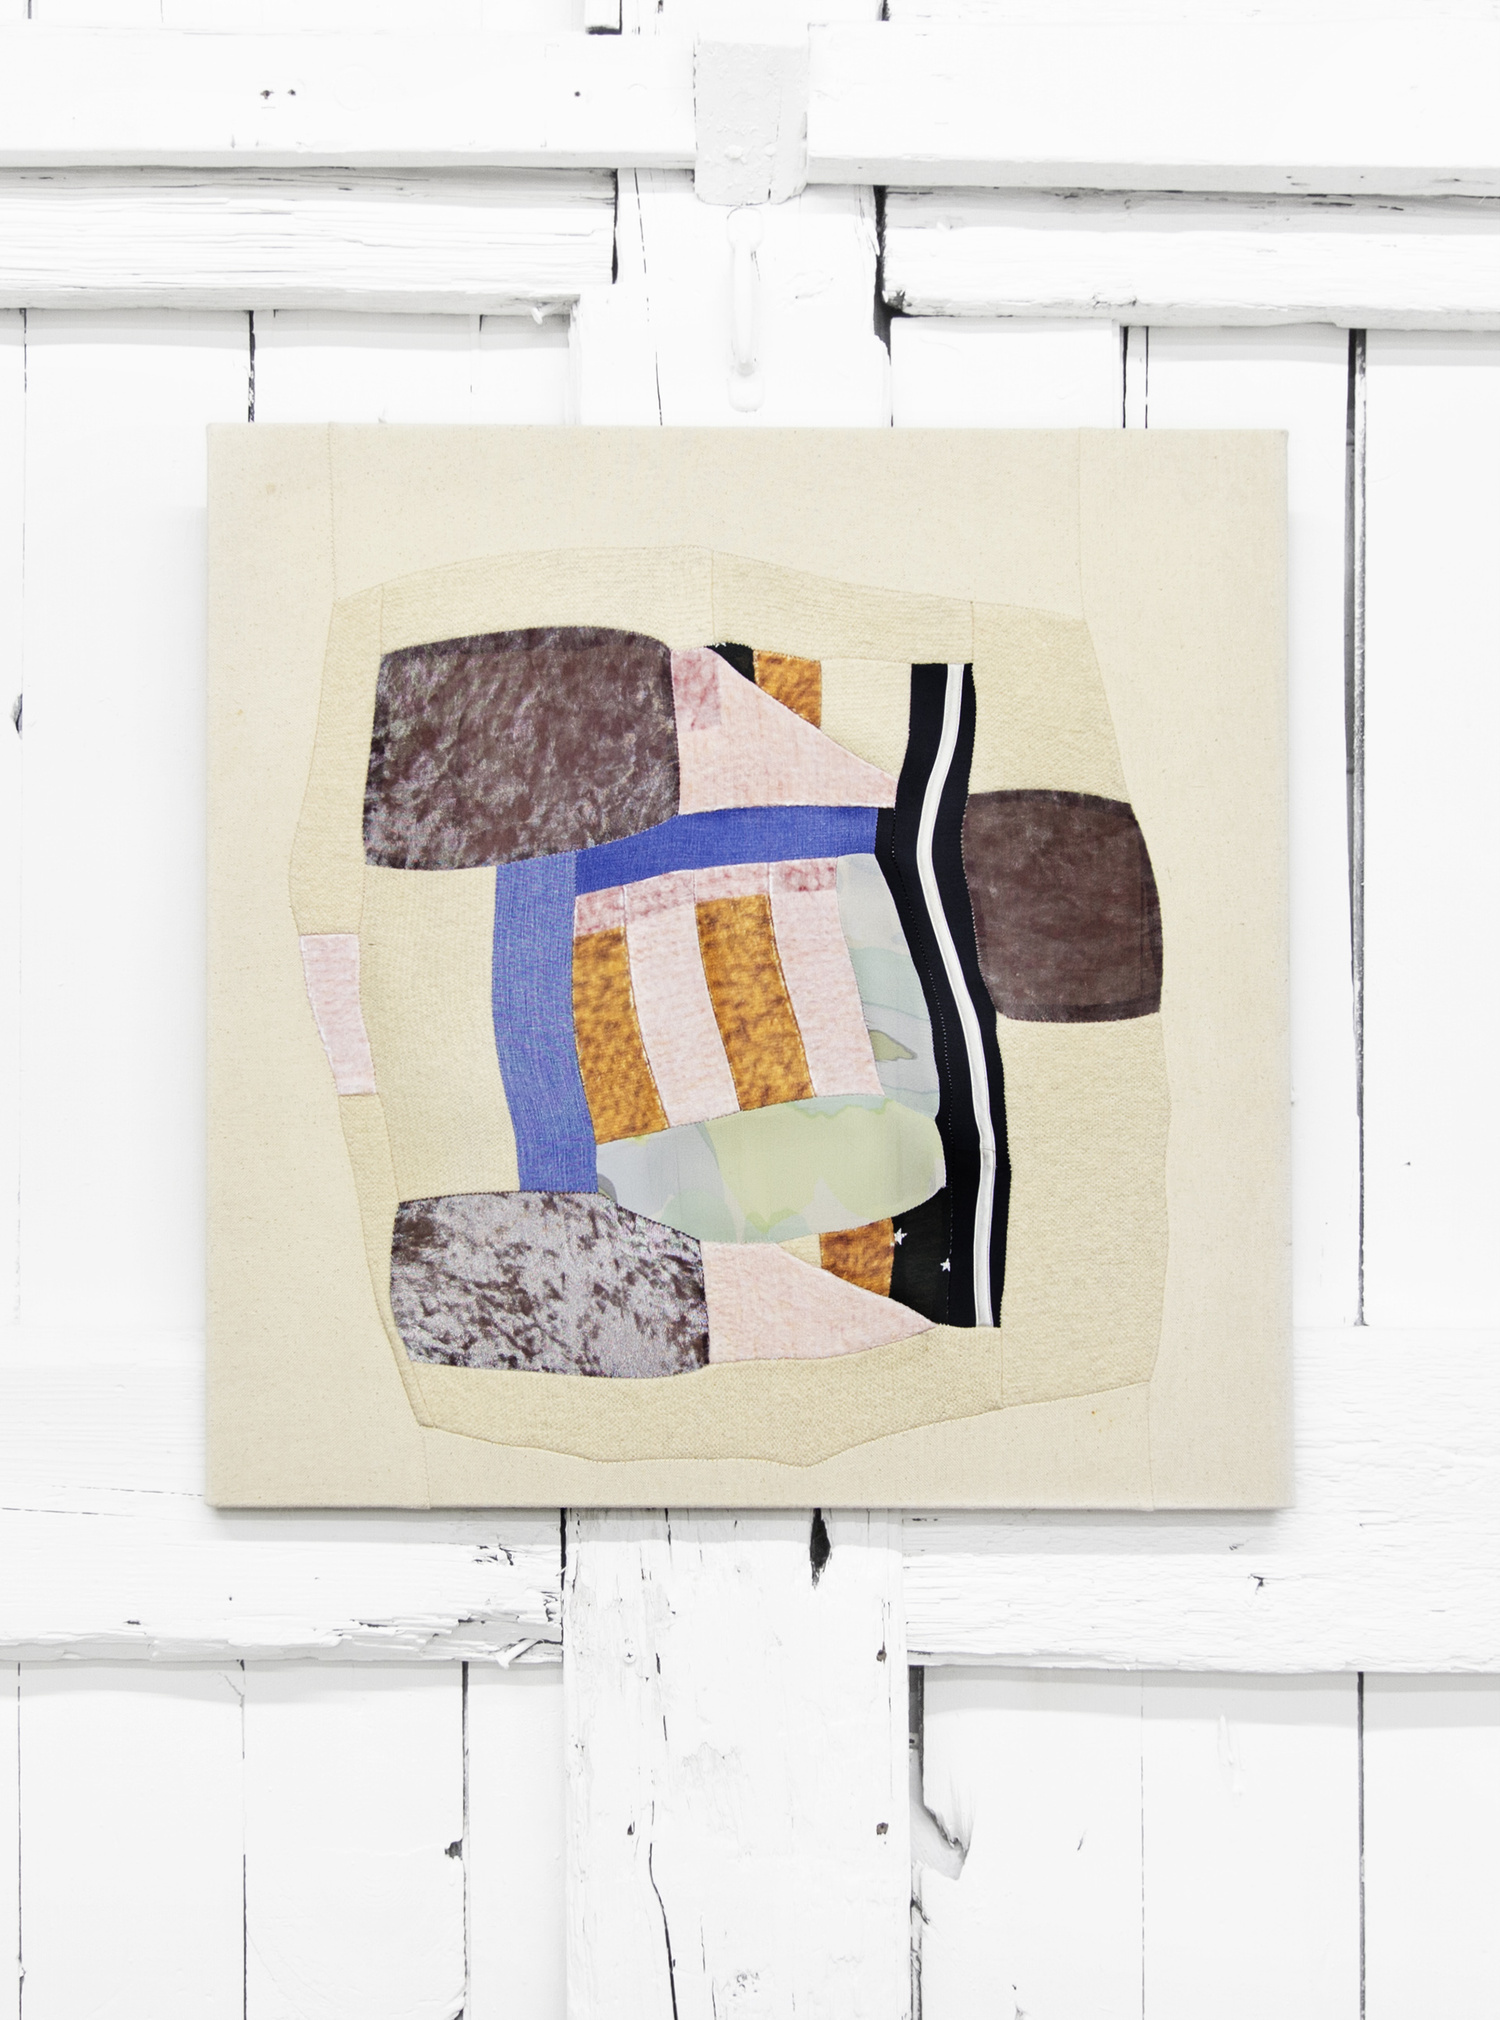 """Anna Buckner's """"Love Letters"""" at BAD WATER in February, 2019. Image courtesy of BAD WATER."""